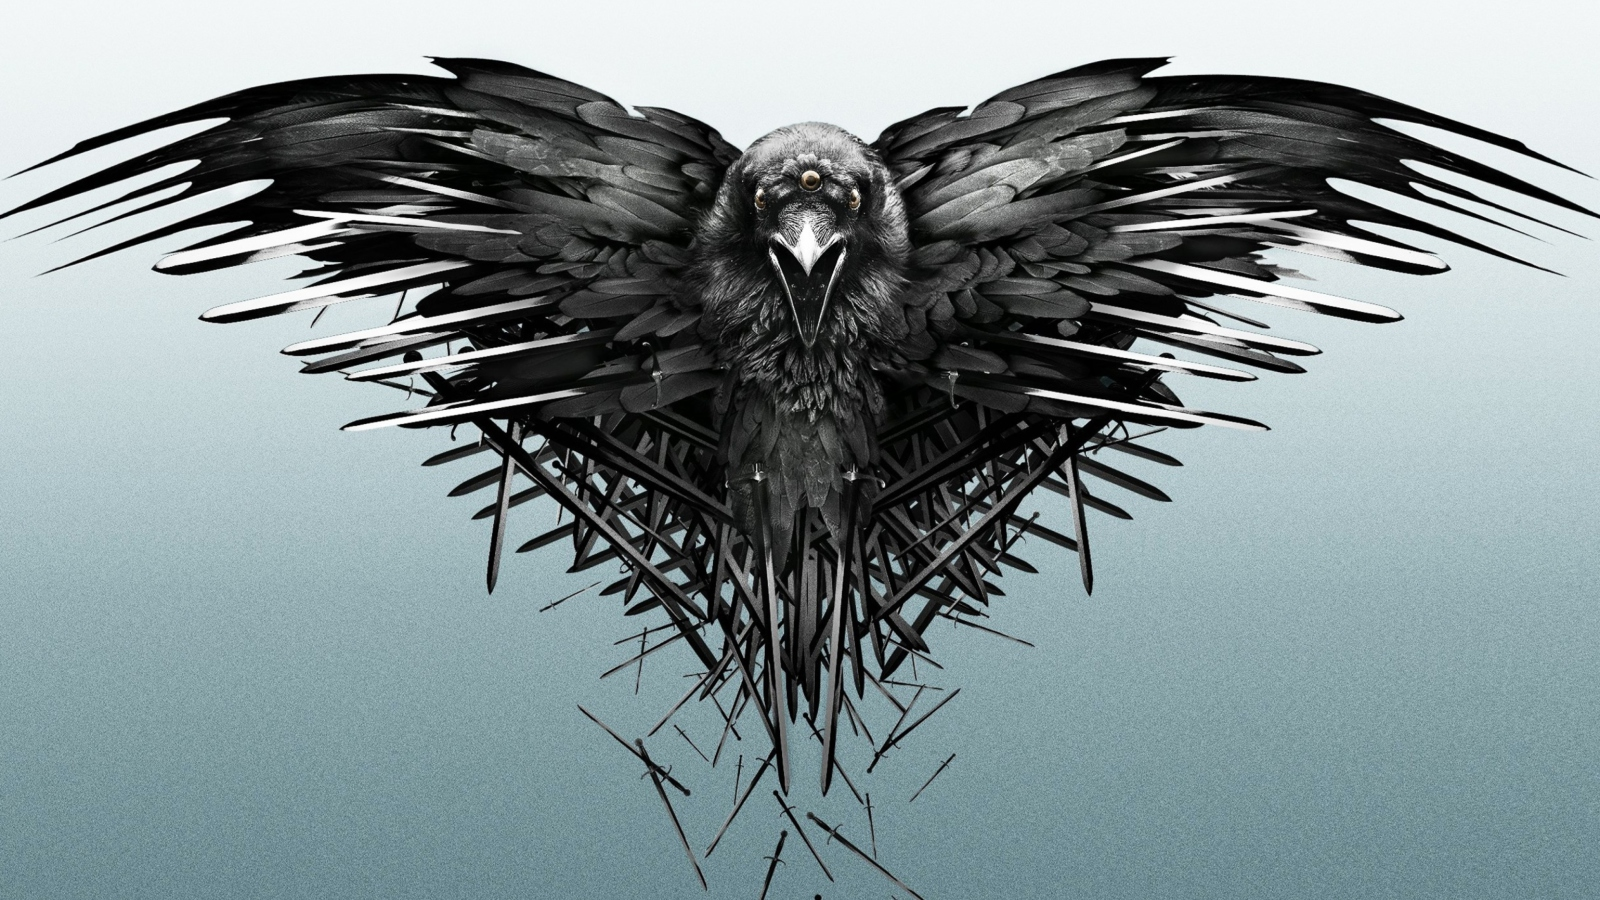 Game Of Thrones Season 4 Mobile Background   Download Mobile 1600x900